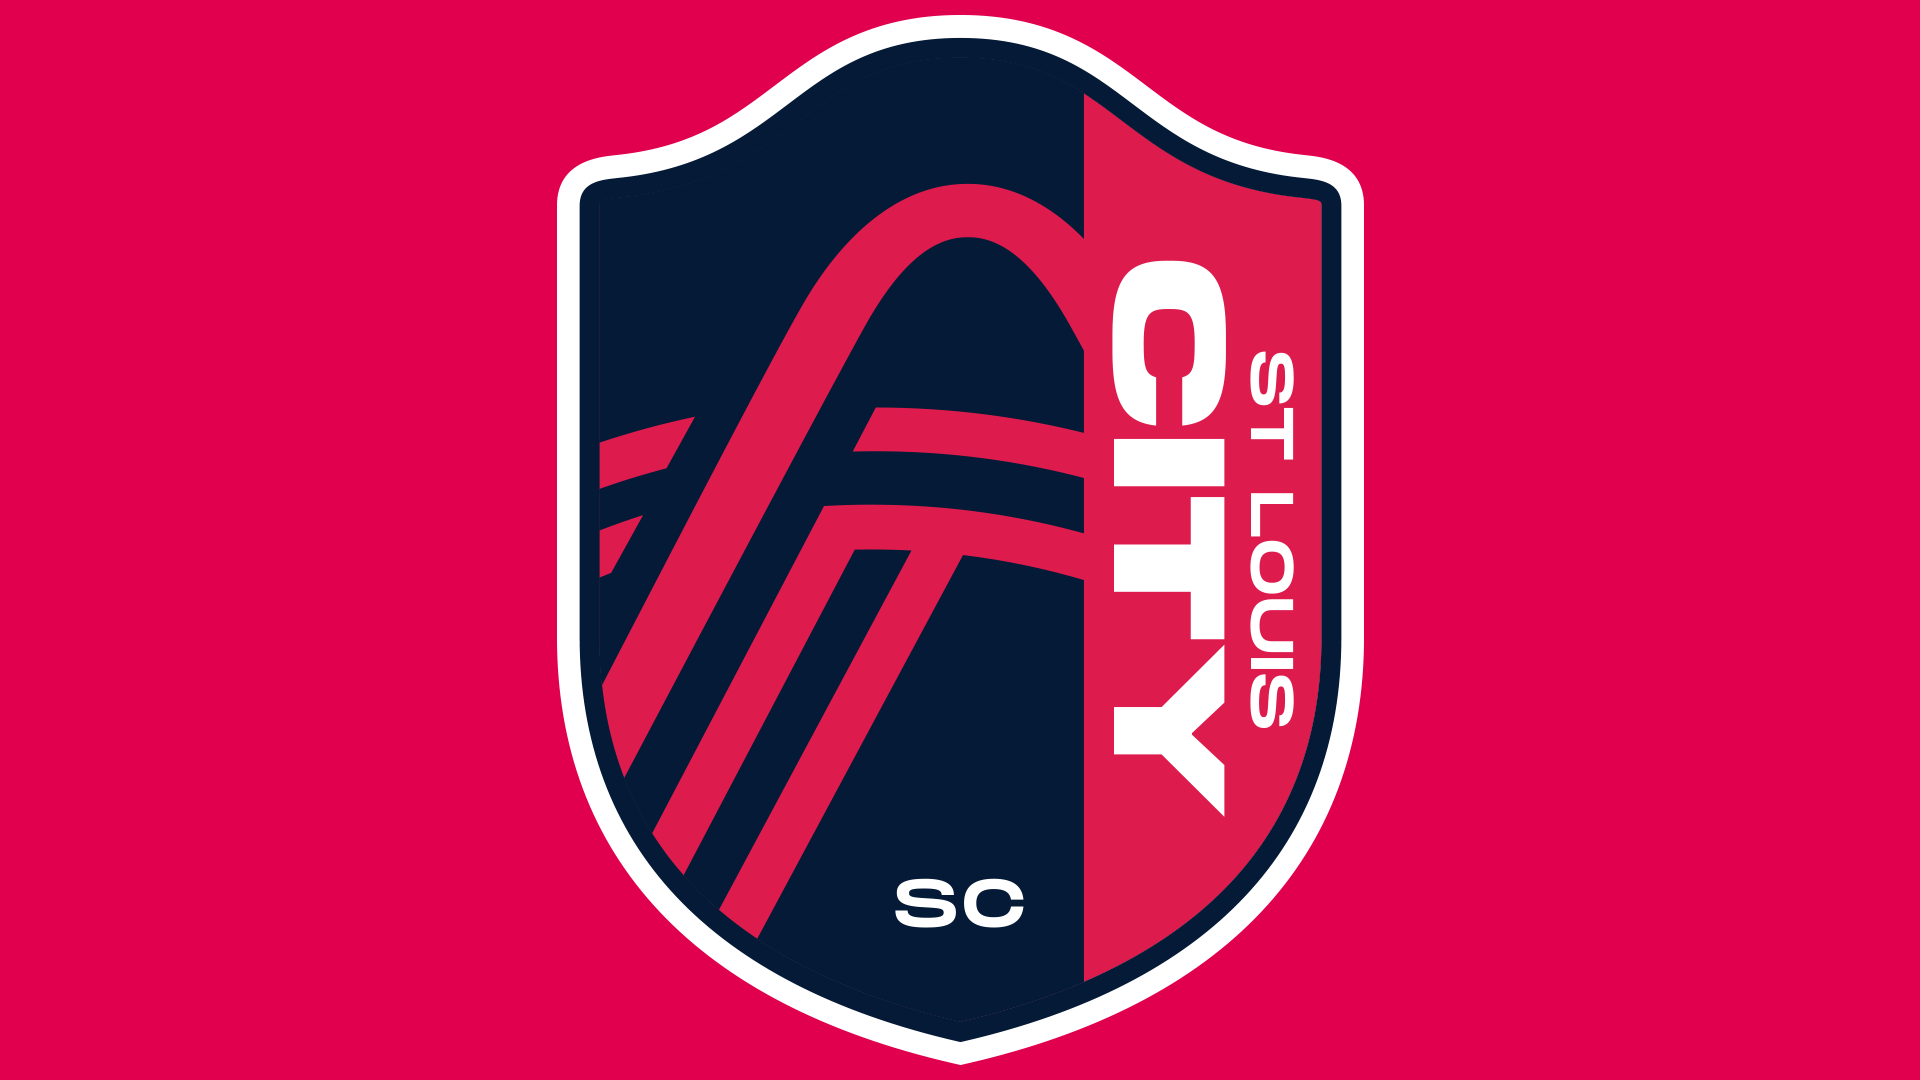 Mls Stl Expansion Team Unveils St Louis City Sc Name Crest